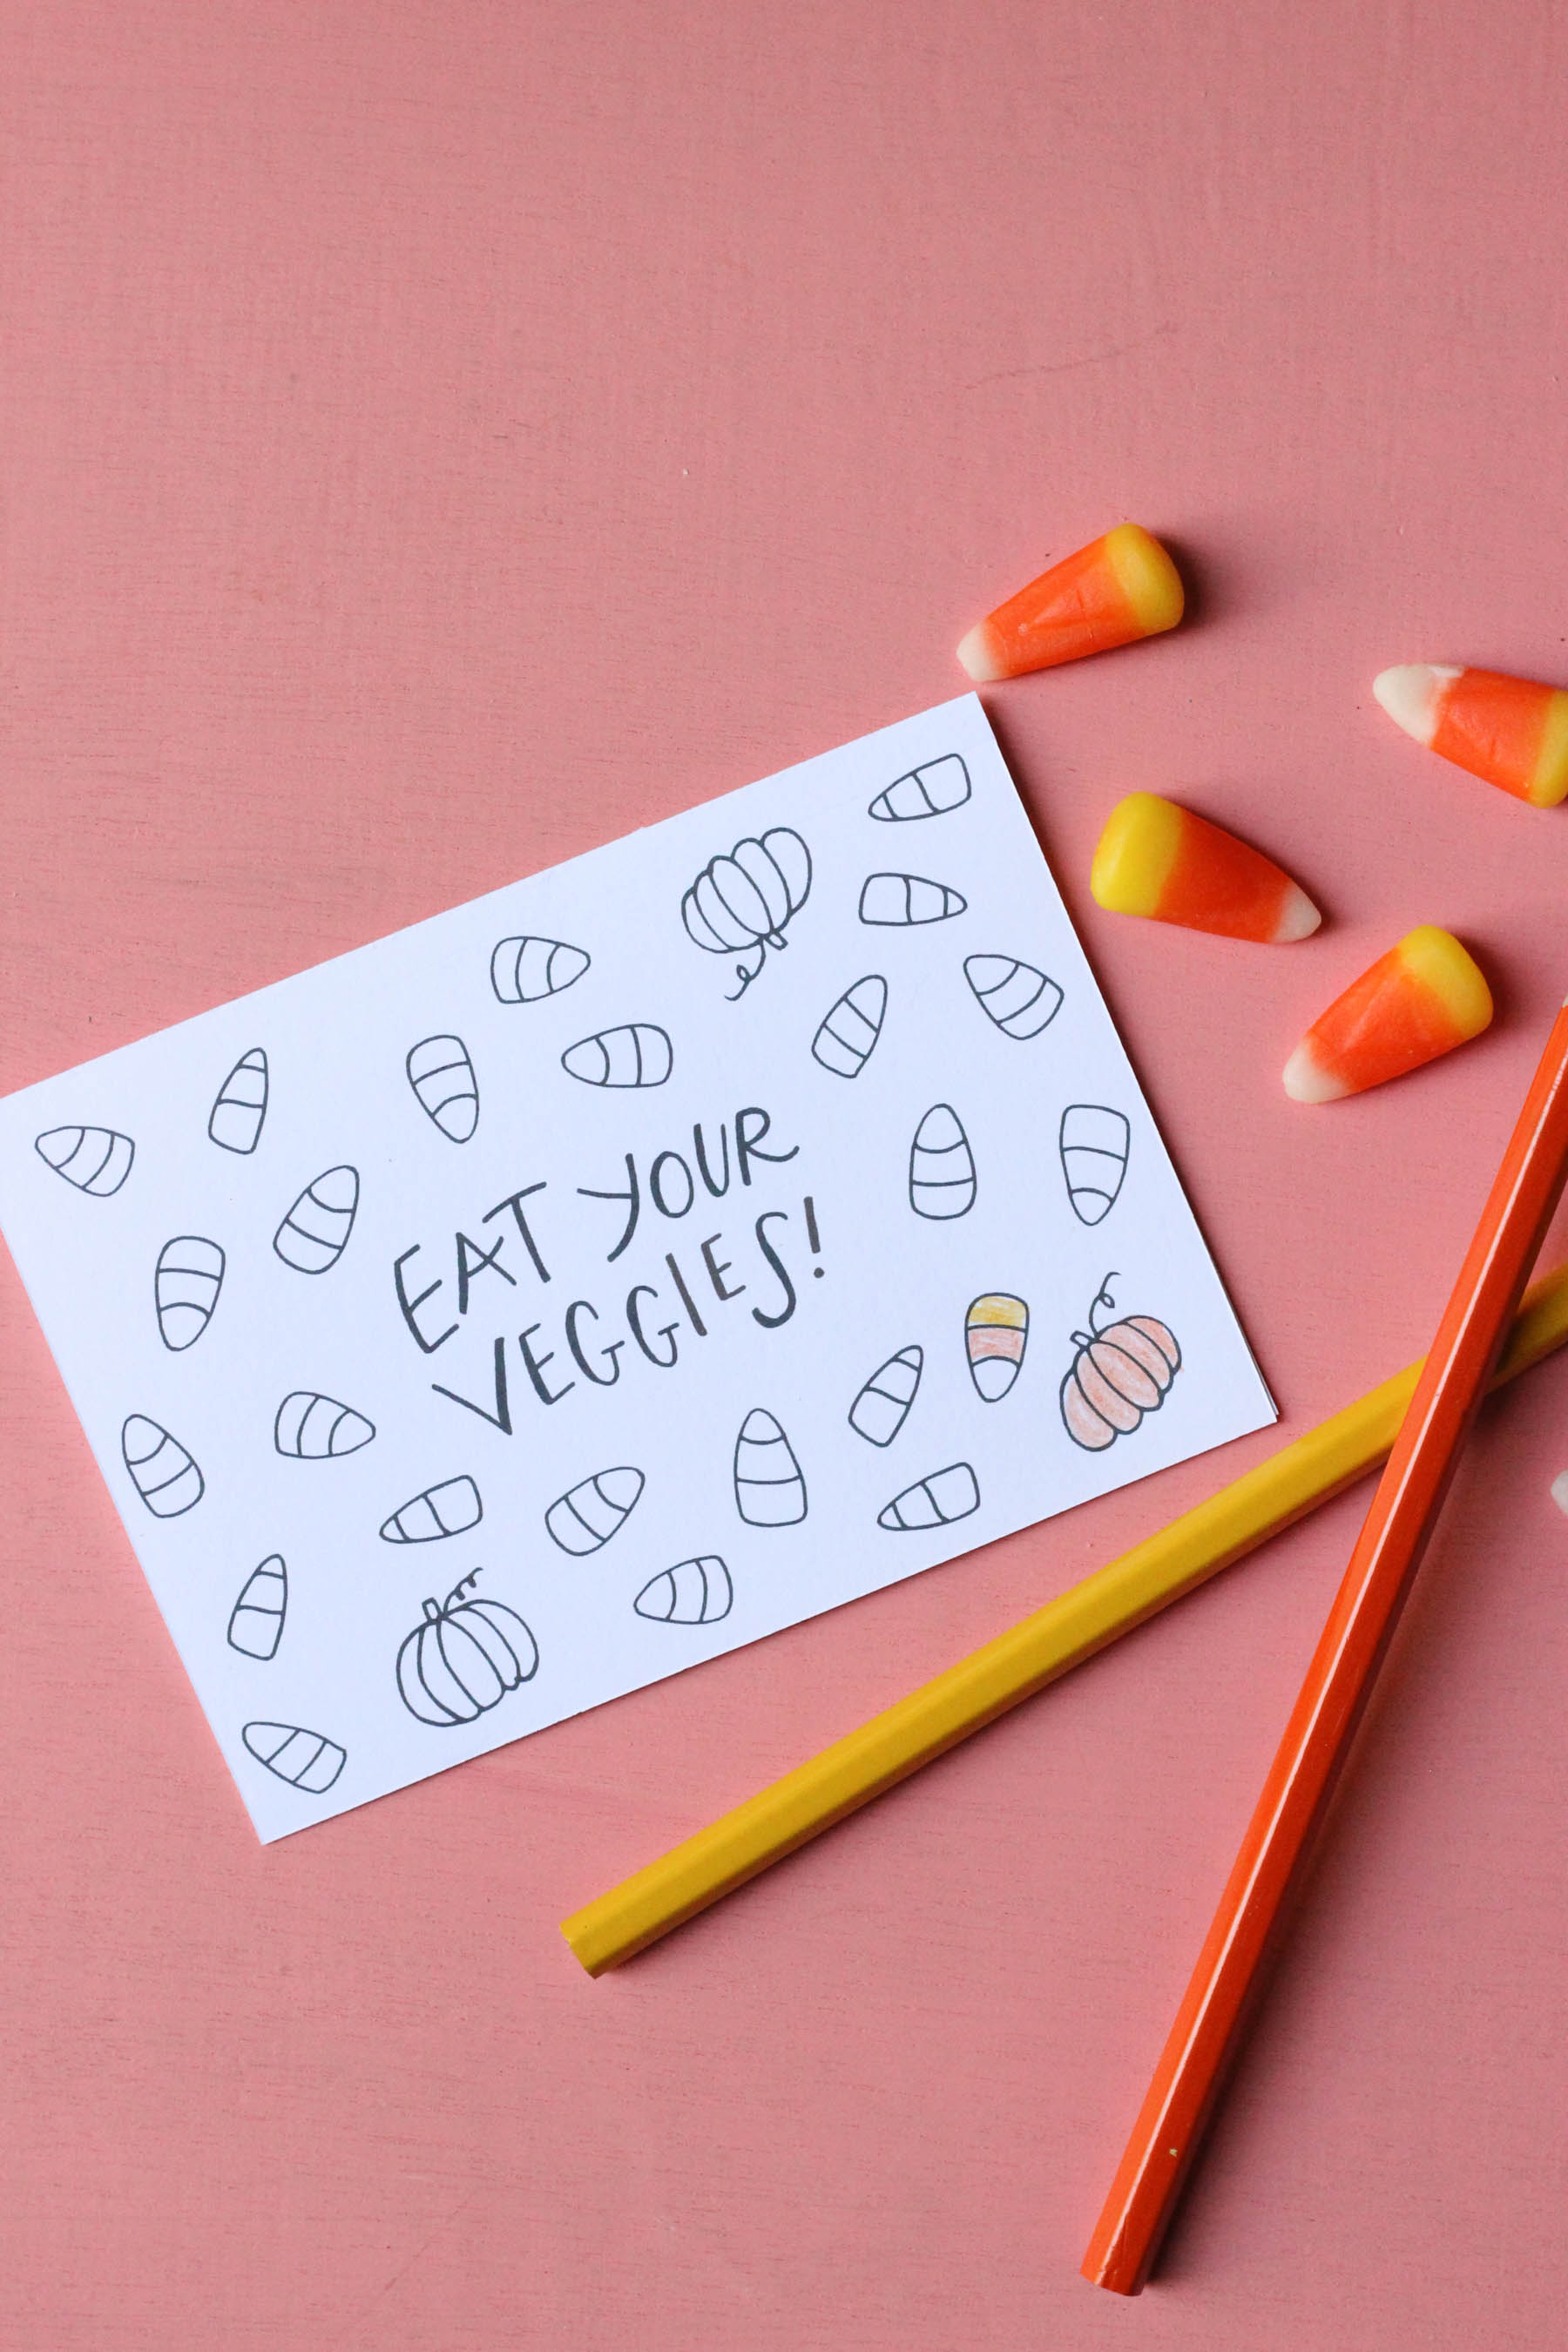 Candy Corn Coloring Page by Mads Beaulieu